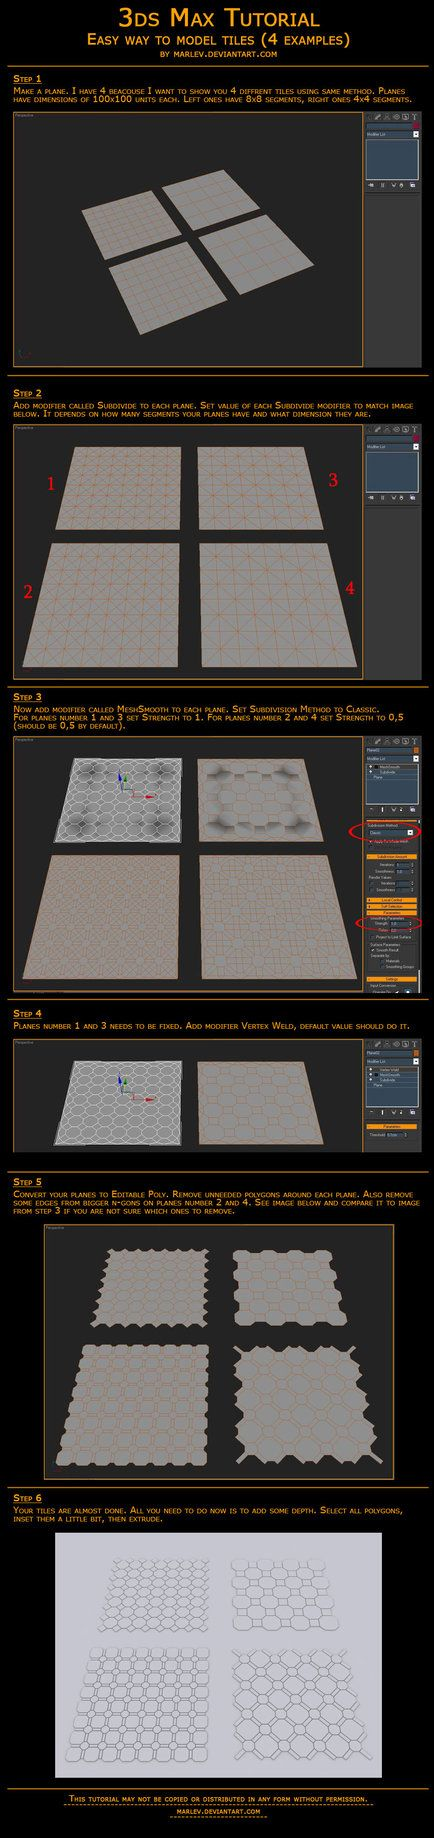 Making of tiles in 3ds Max by marlev on DeviantArt